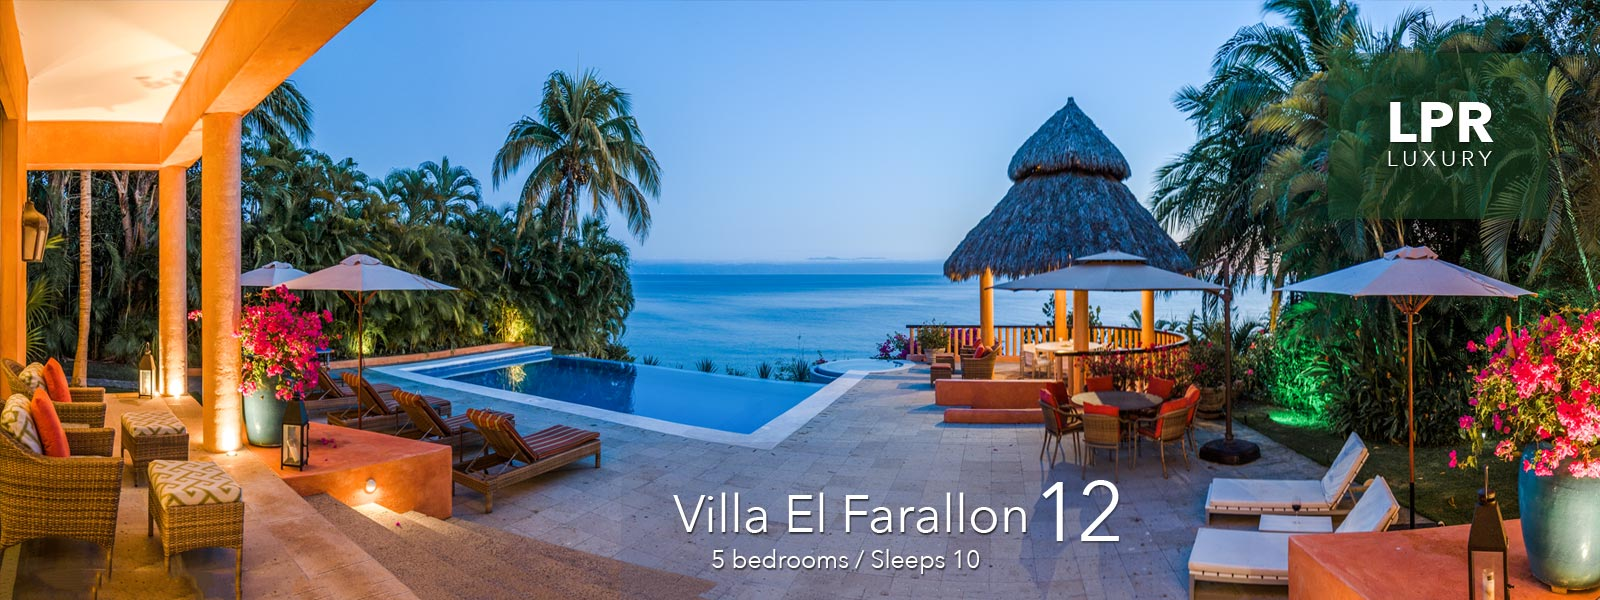 Villa El Farallon 12 - Luxury beachfront vacation rental villa in Punta de Mita, Riviera Nayarit, Mexico - Puerto Vallarta Real Estate